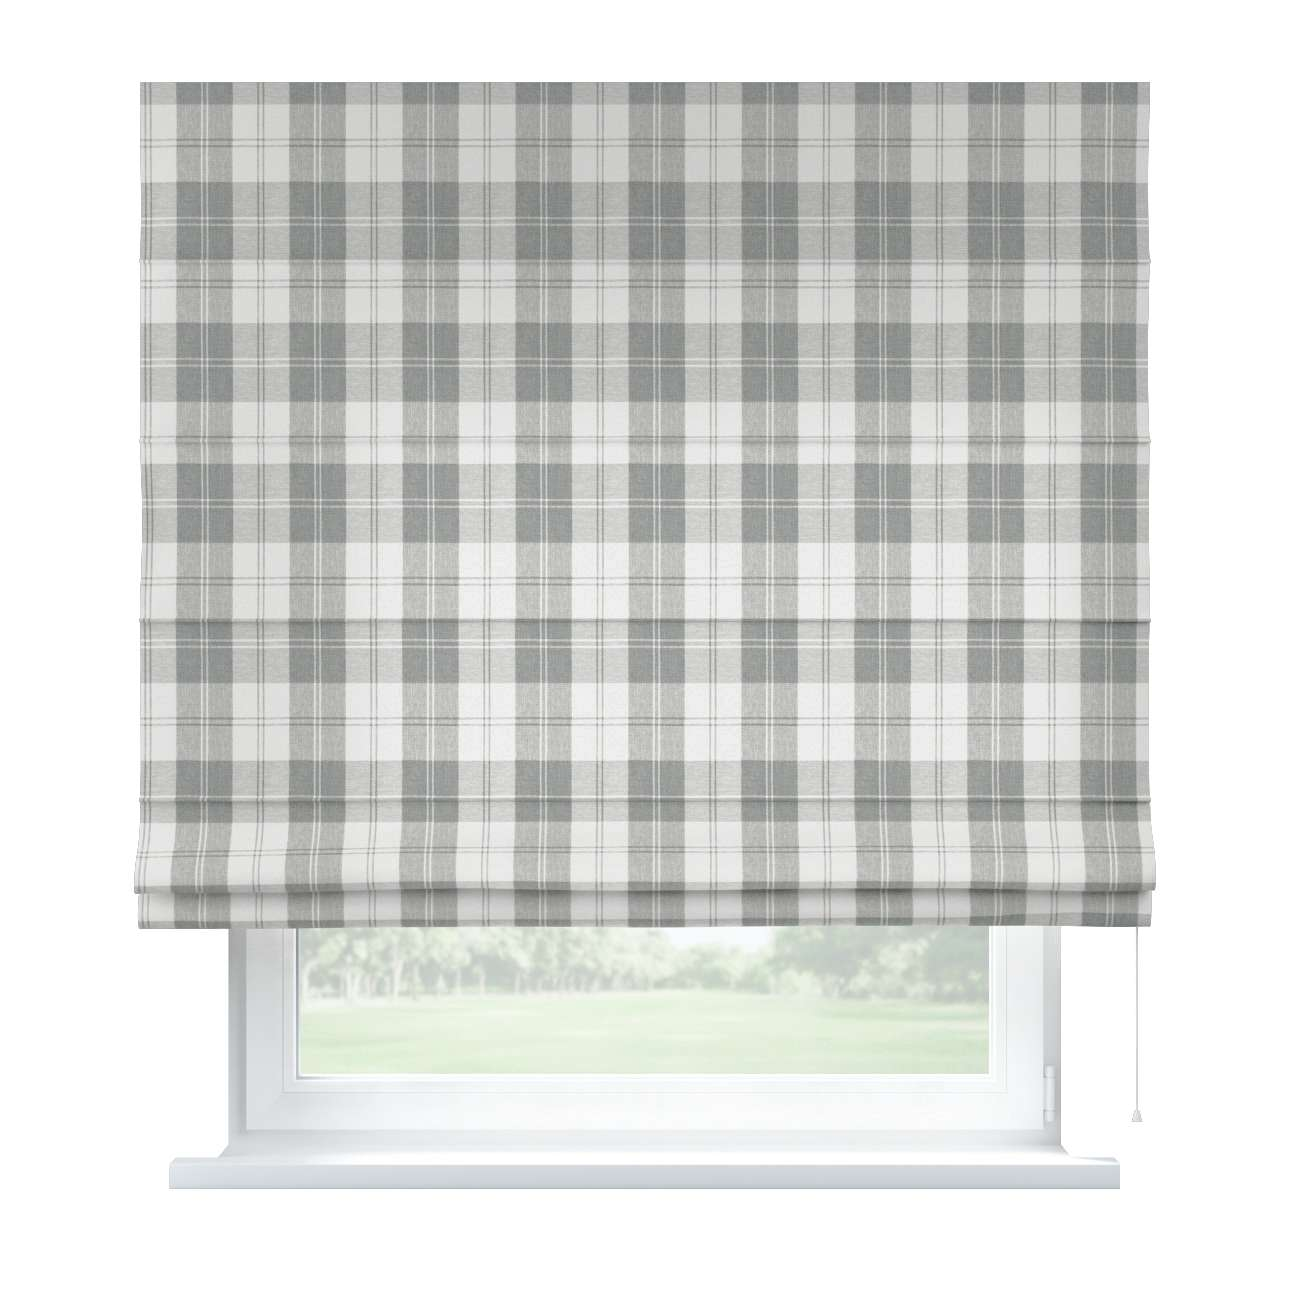 Capri roman blind 80 x 170 cm (31.5 x 67 inch) in collection Edinburgh , fabric: 115-79